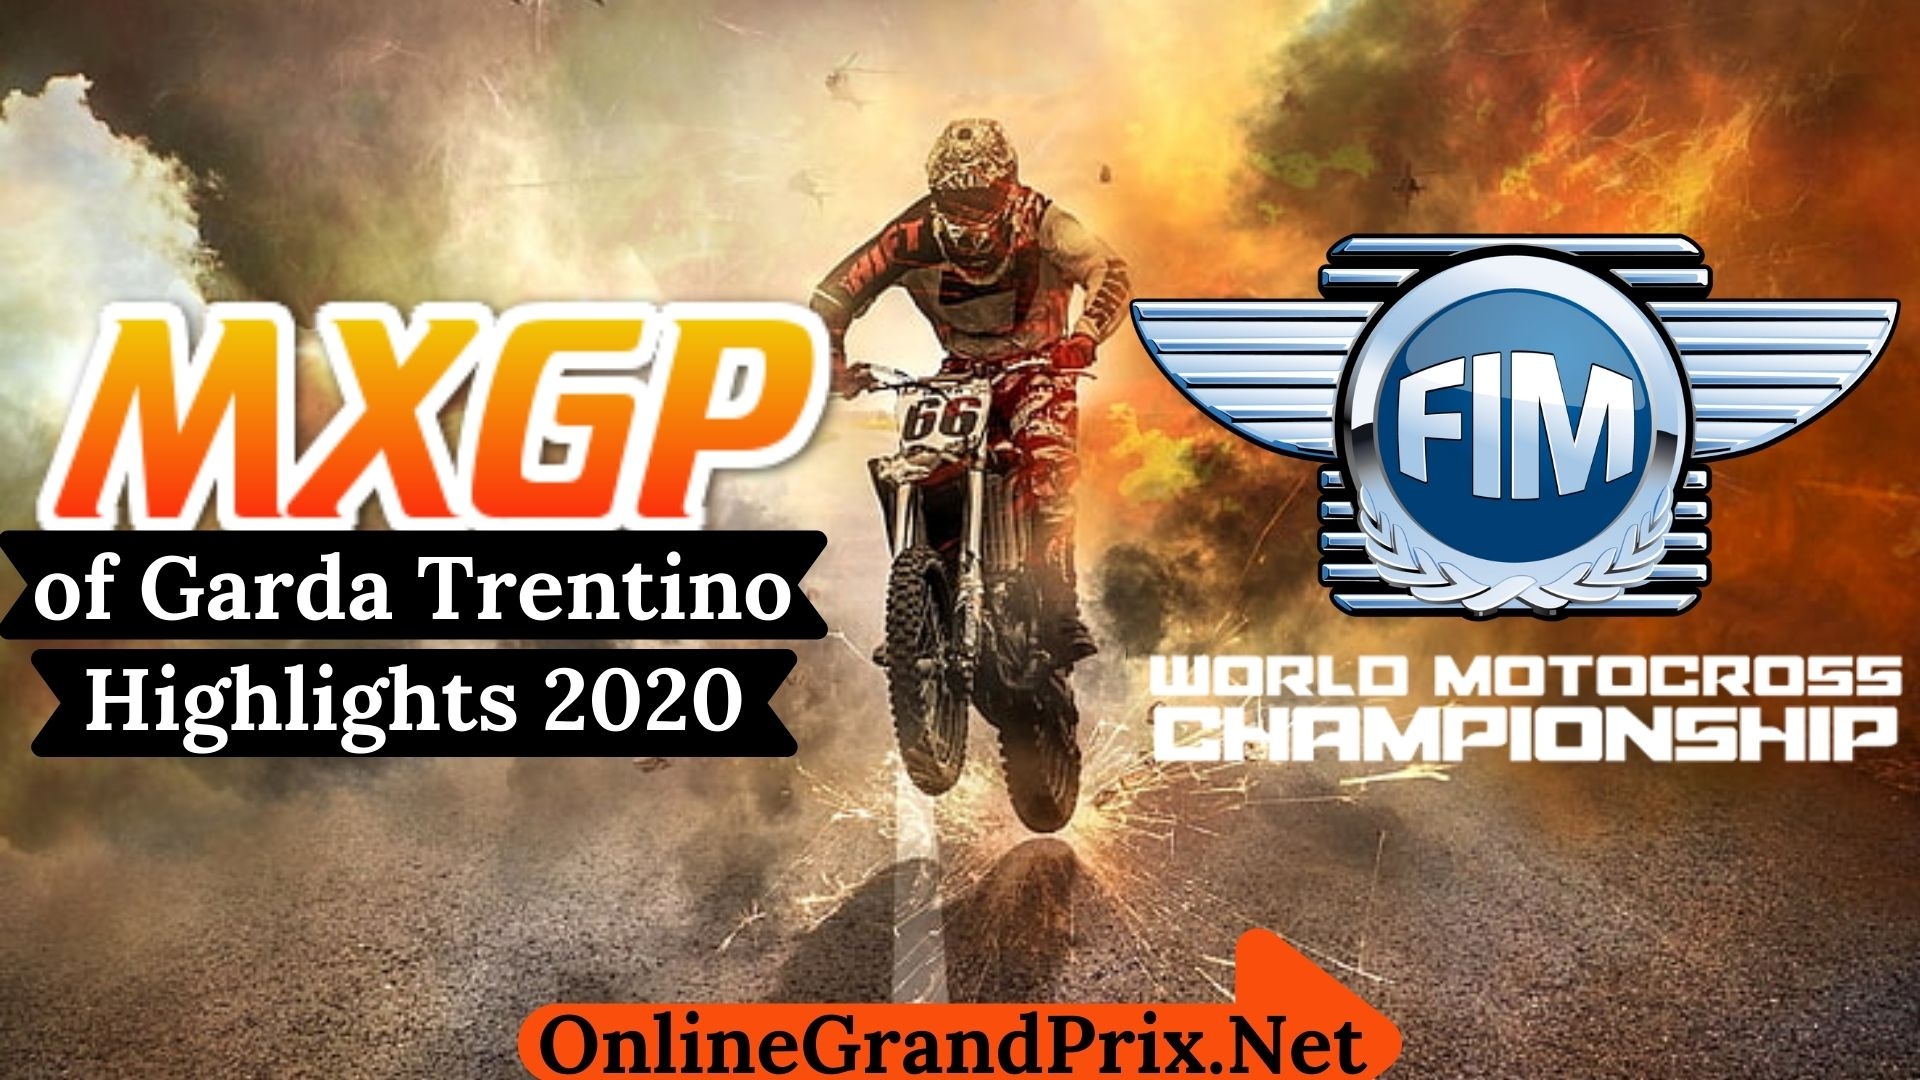 MXGP of Garda Trentino Highlights 2020